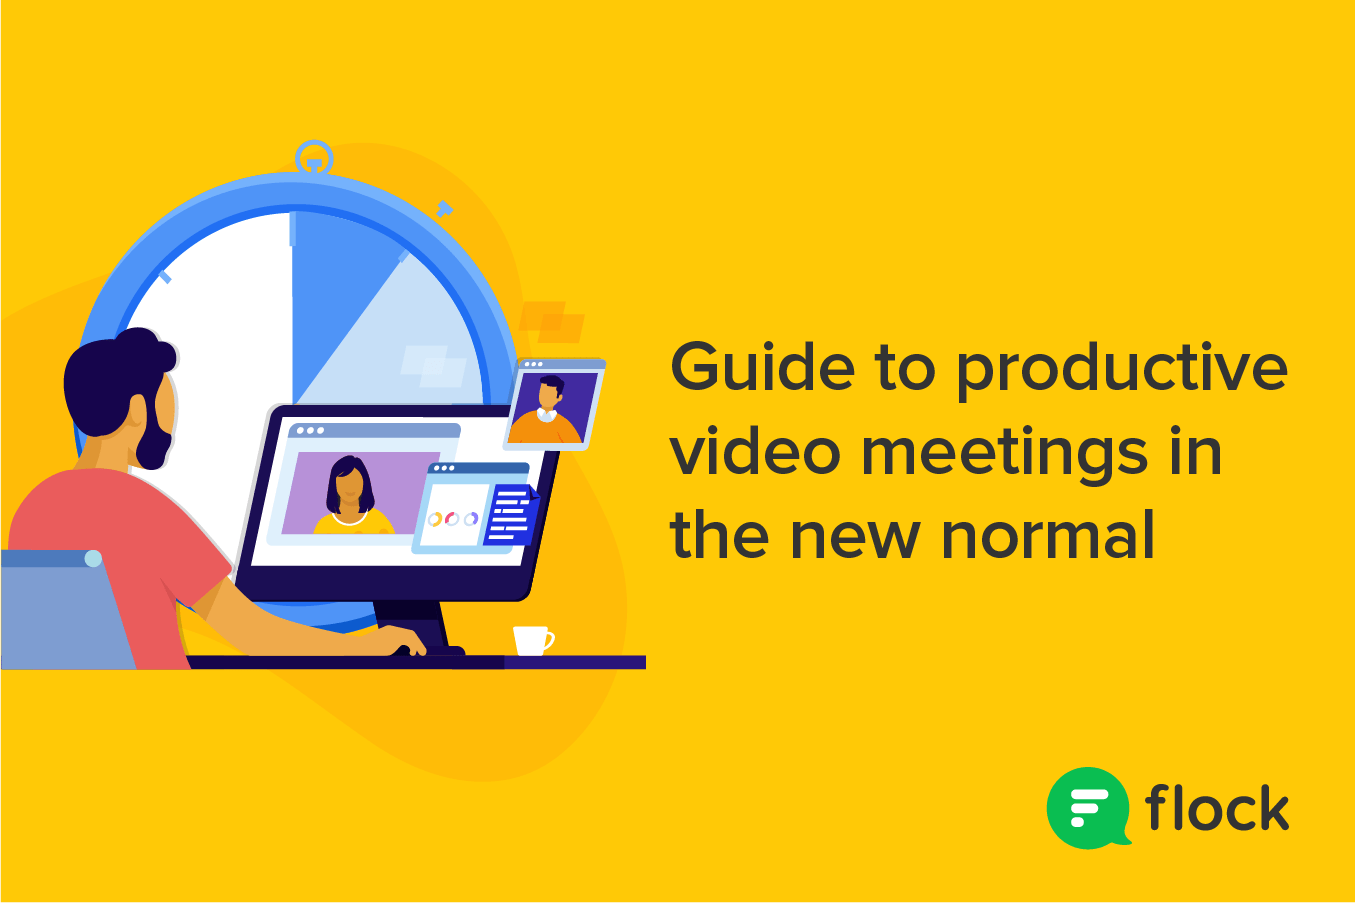 Your guide to productive video meetings in the new normal